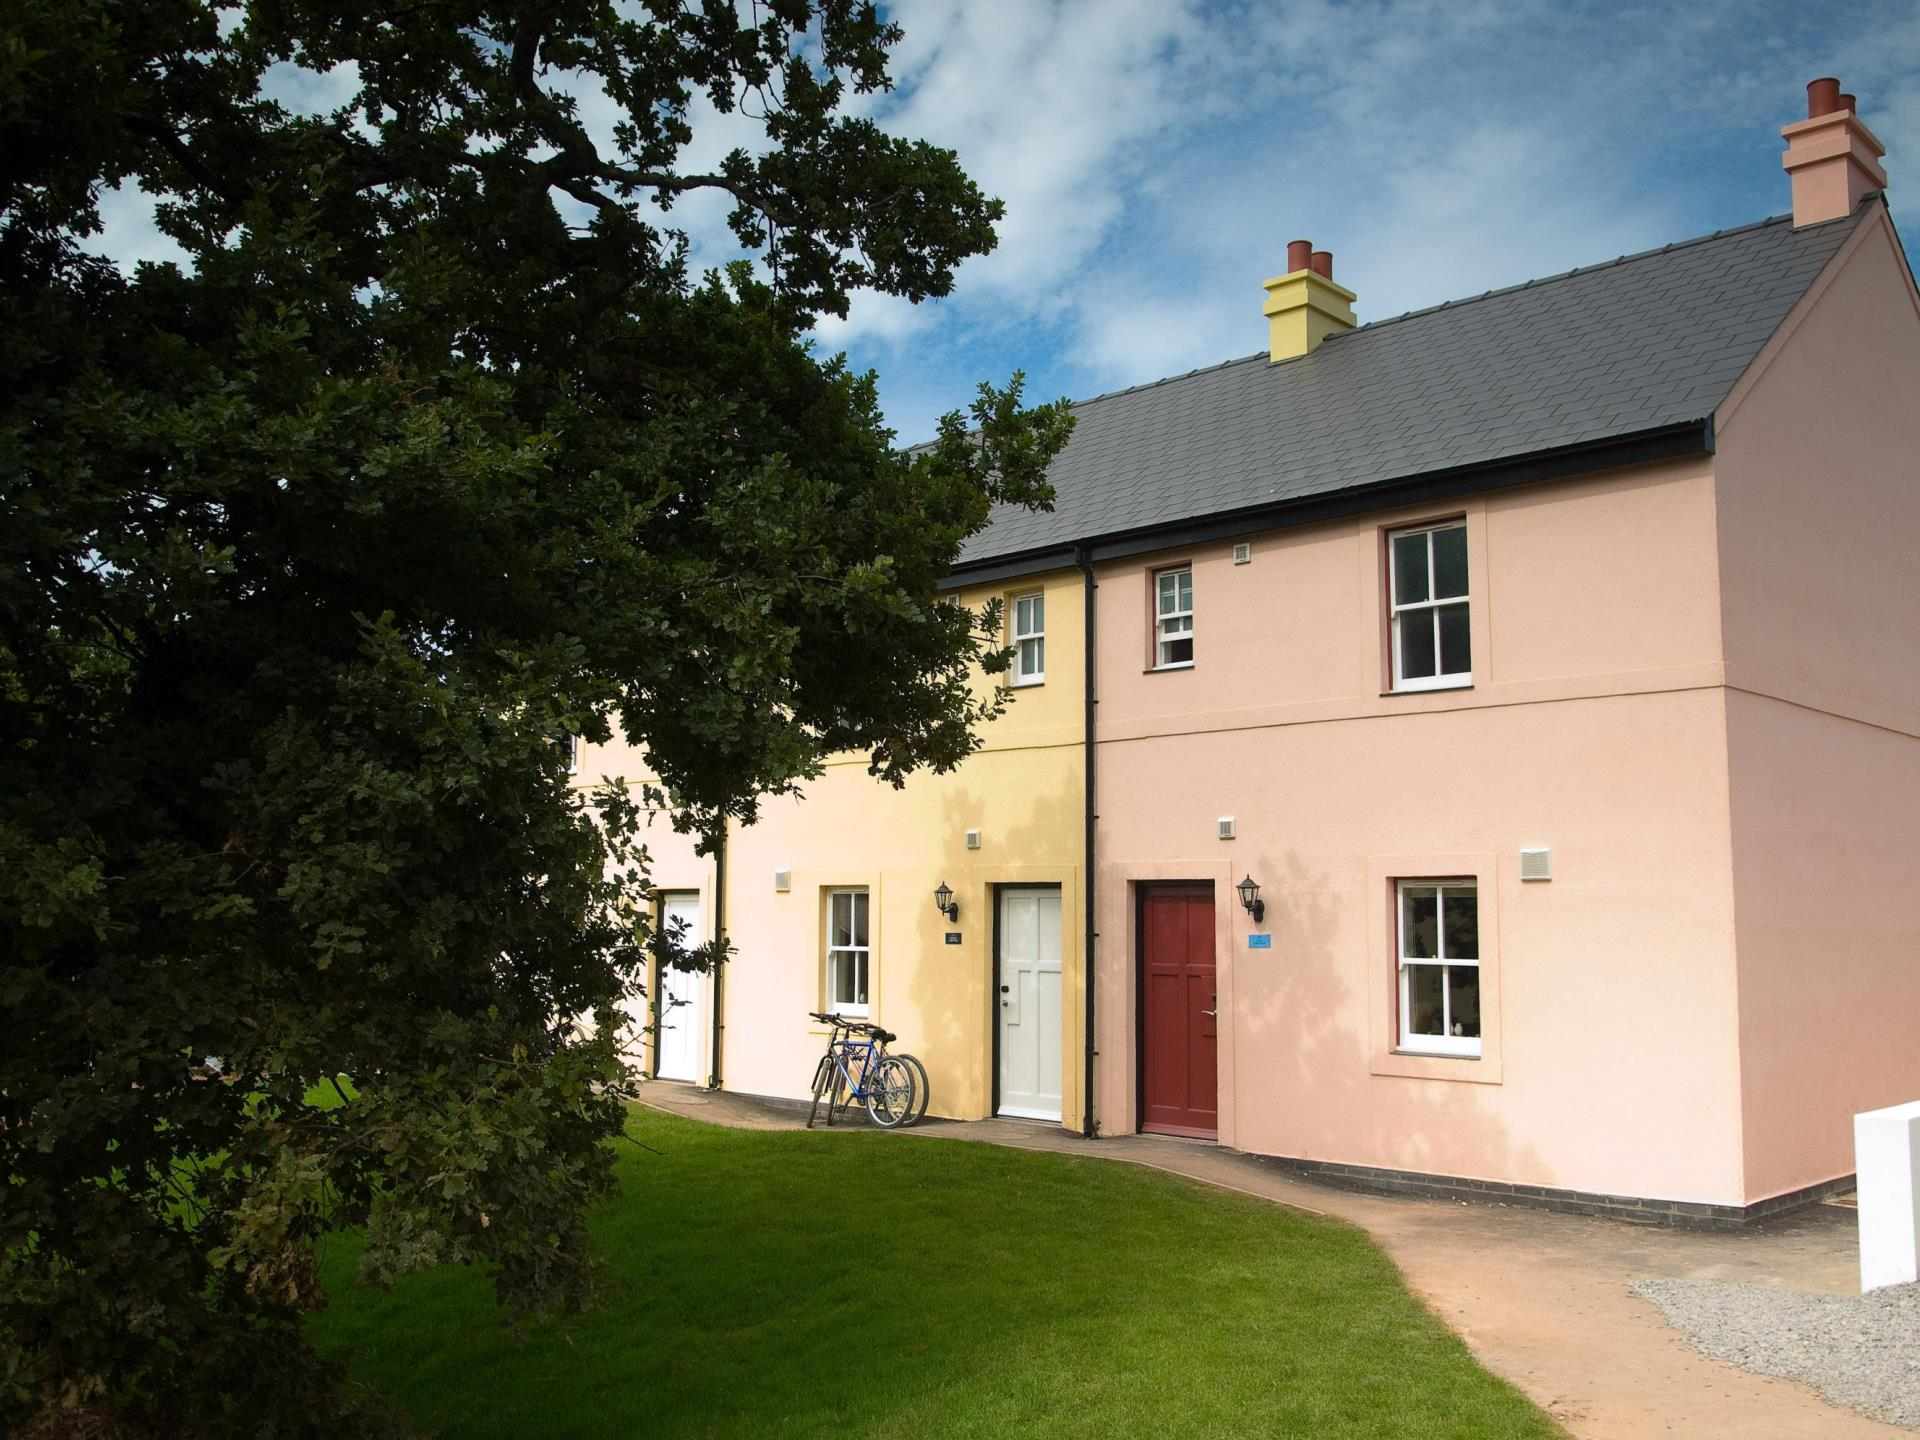 Bluestone's one and two bedroom cottages